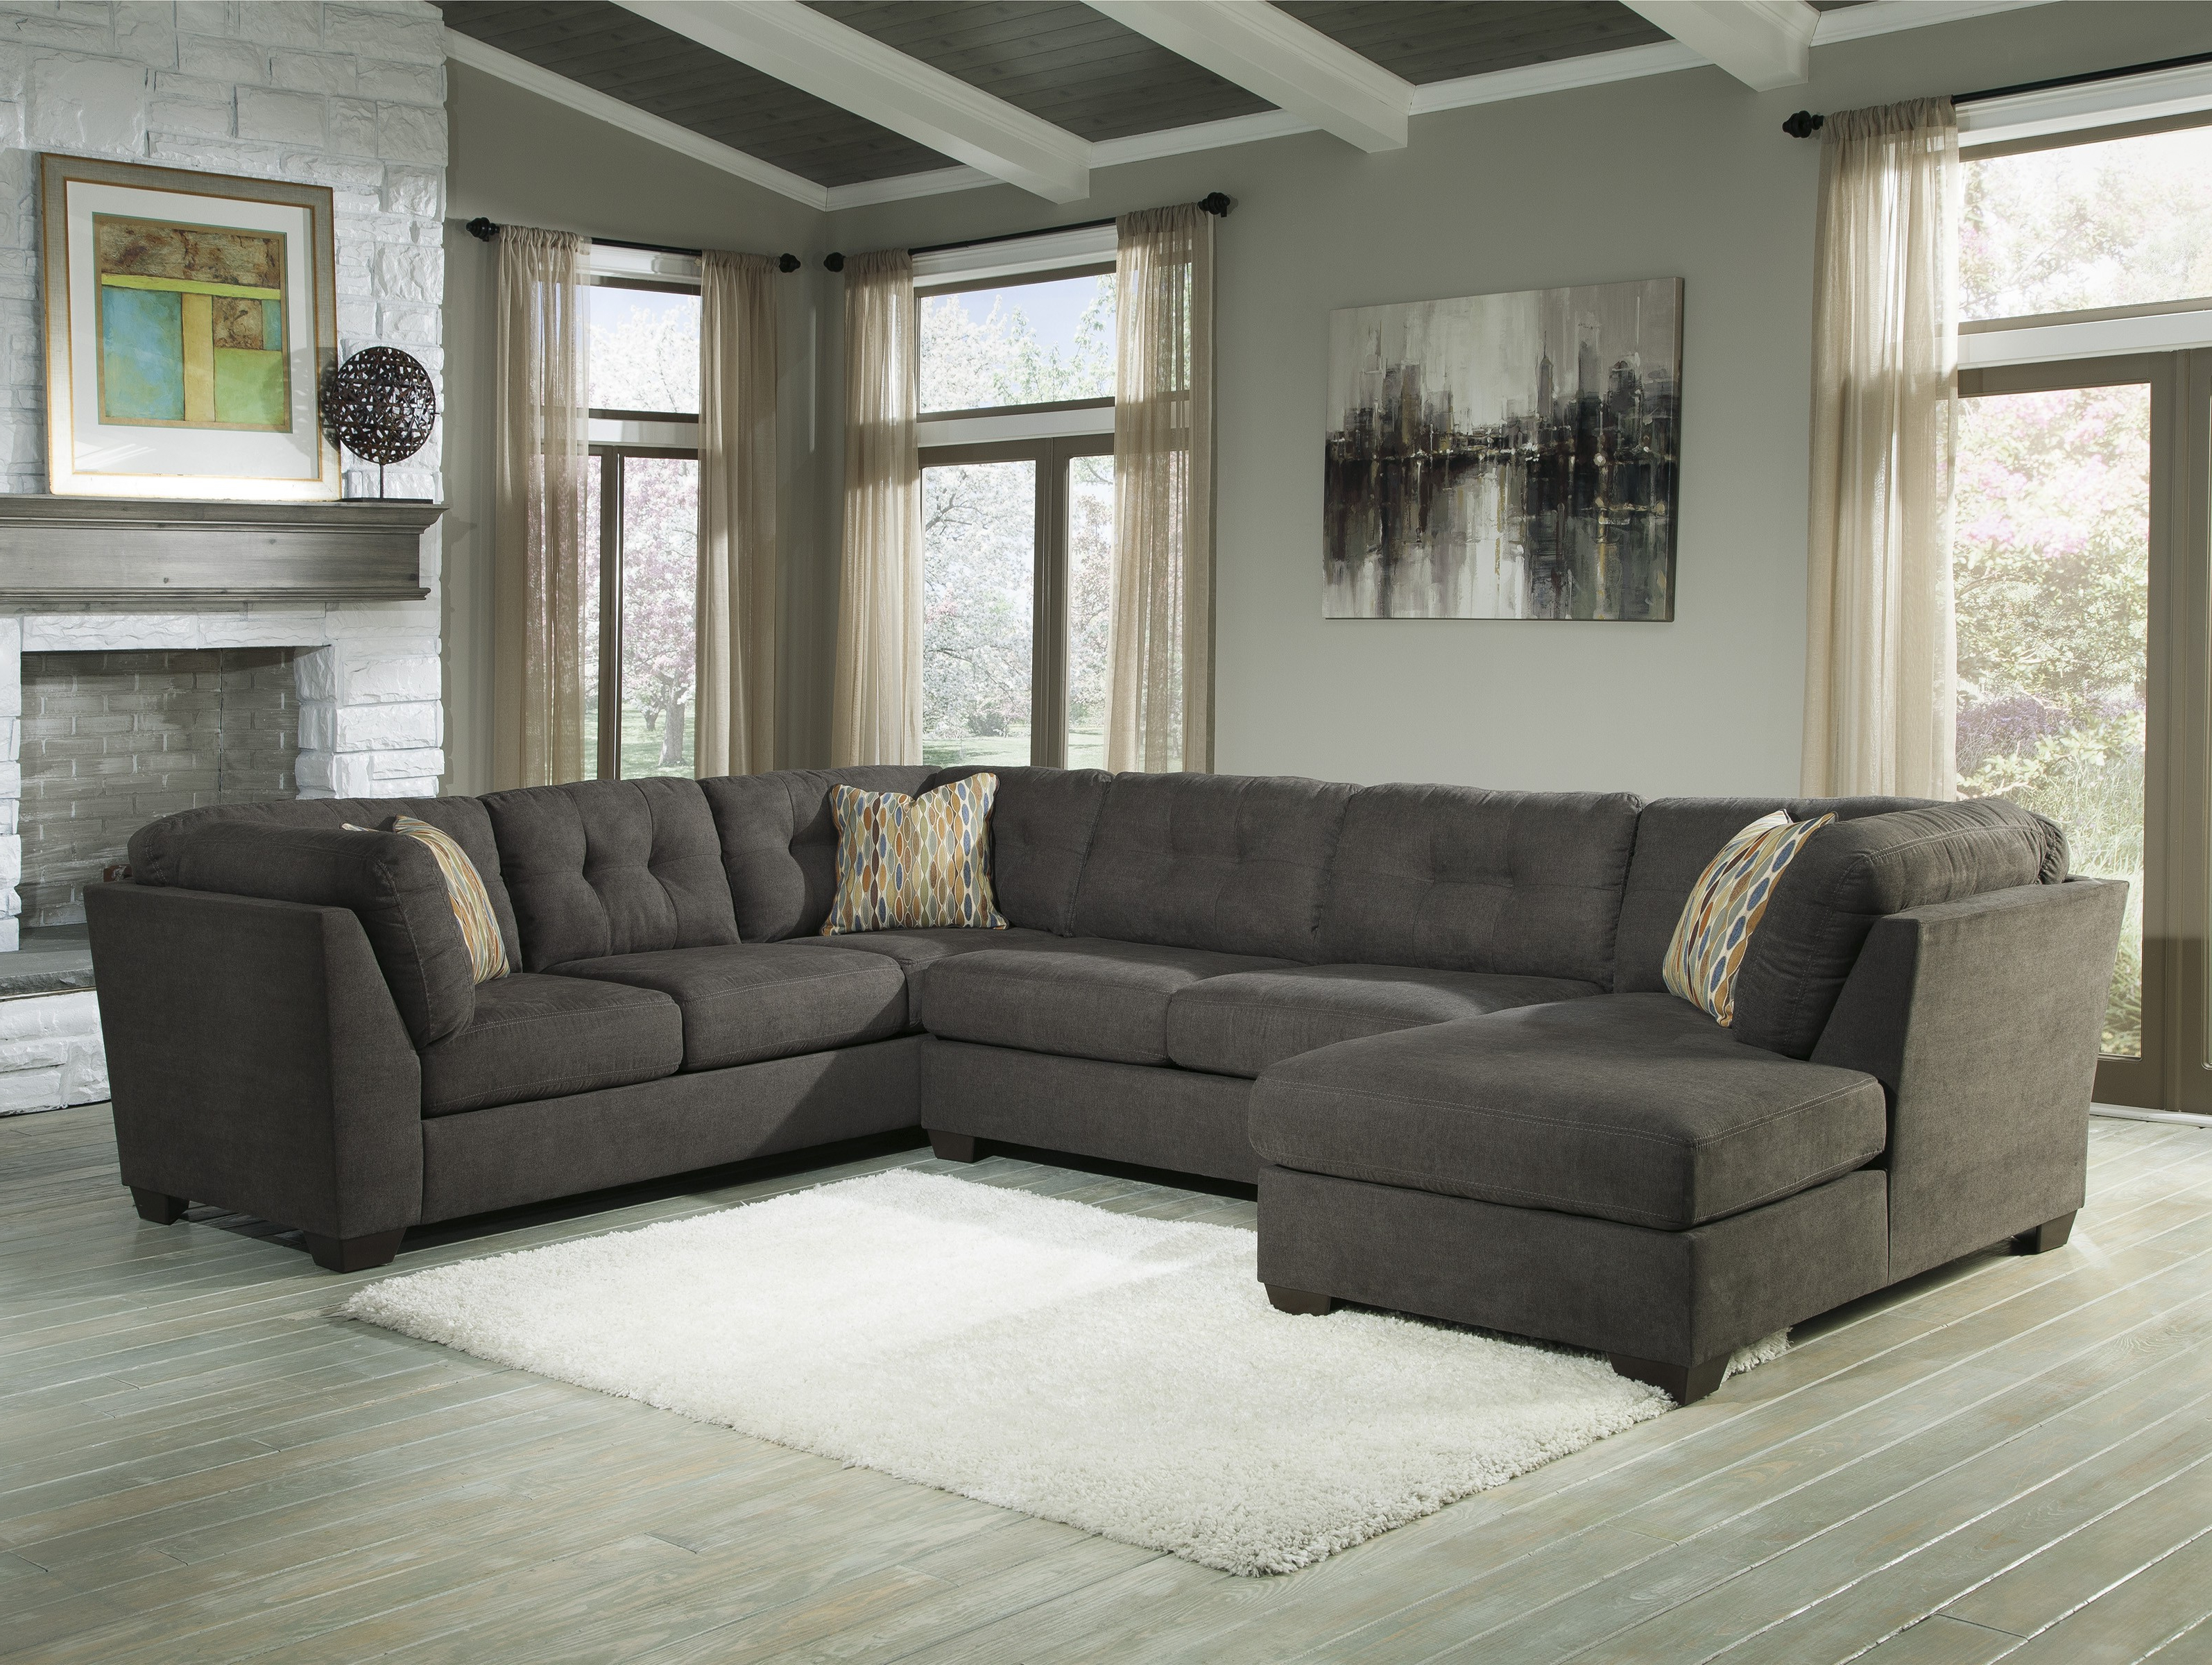 Best And Newest Avery 2 Piece Sectionals With Raf Armless Chaise Throughout Armless Sectional Sofa With Chaise (View 6 of 20)